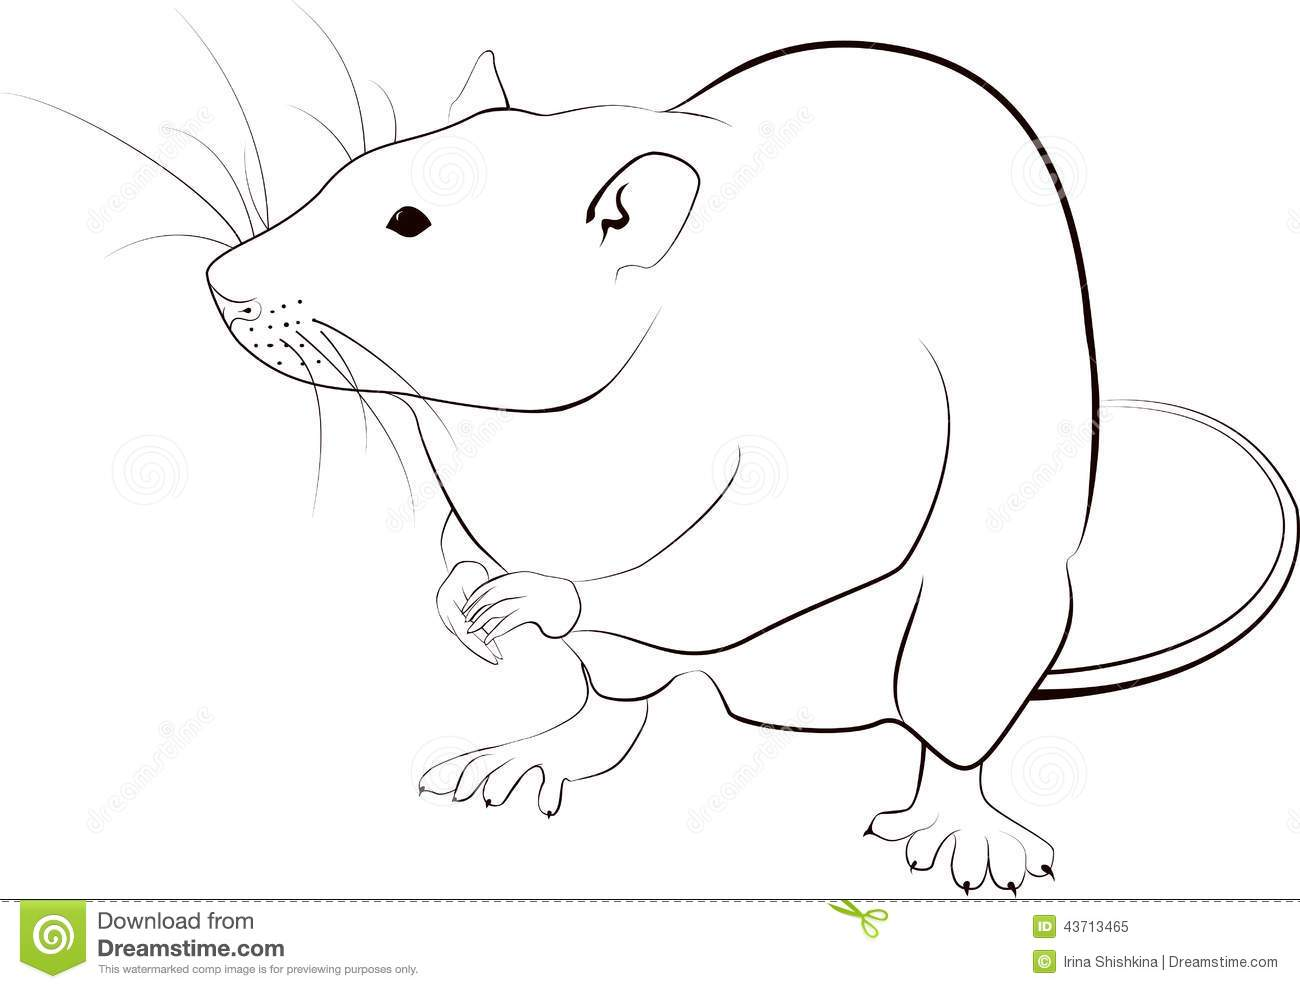 Rat Sketch Stock Vector Image 43713465